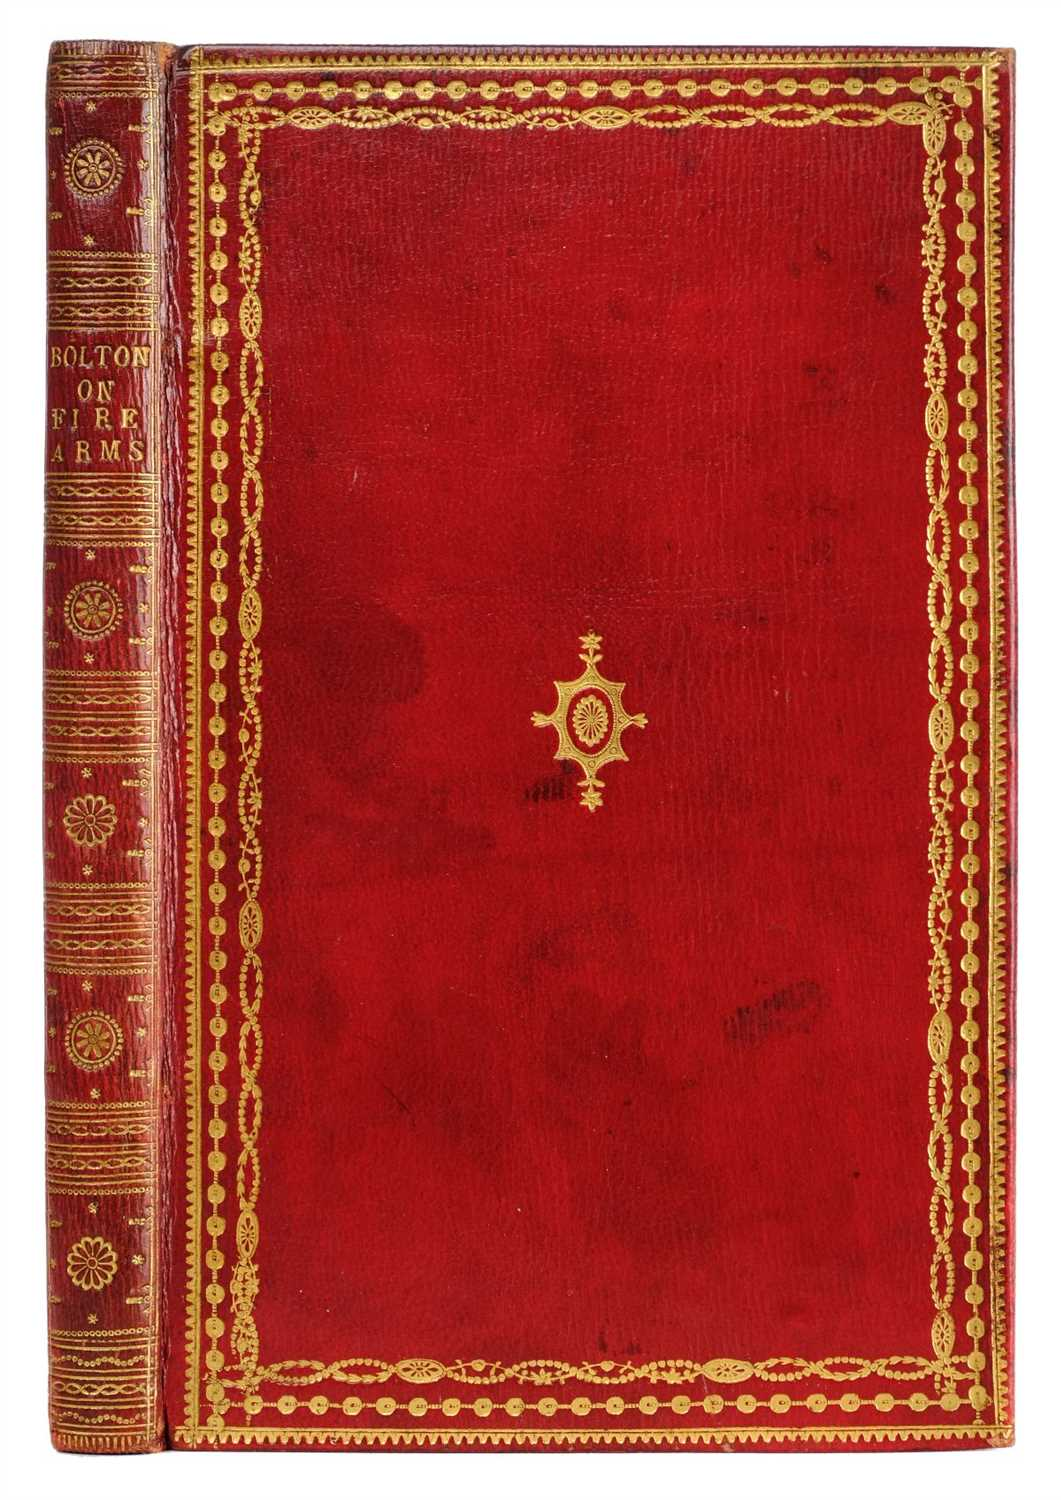 Lot 318 - Bolton (George). Remarks on the Present Defective State of Fire-Arms, 1795